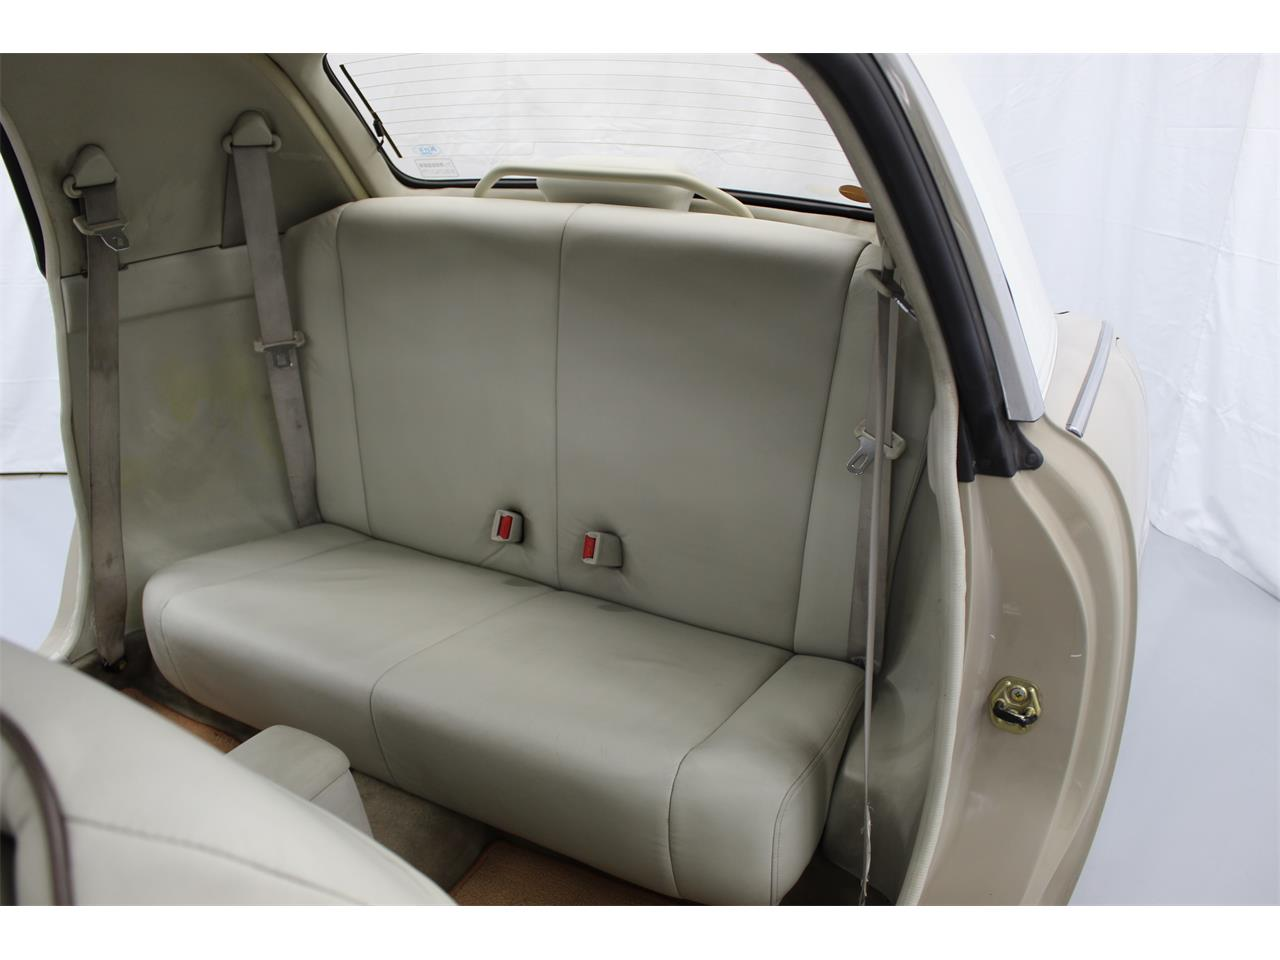 1991 Nissan Figaro for sale in Christiansburg, VA – photo 21